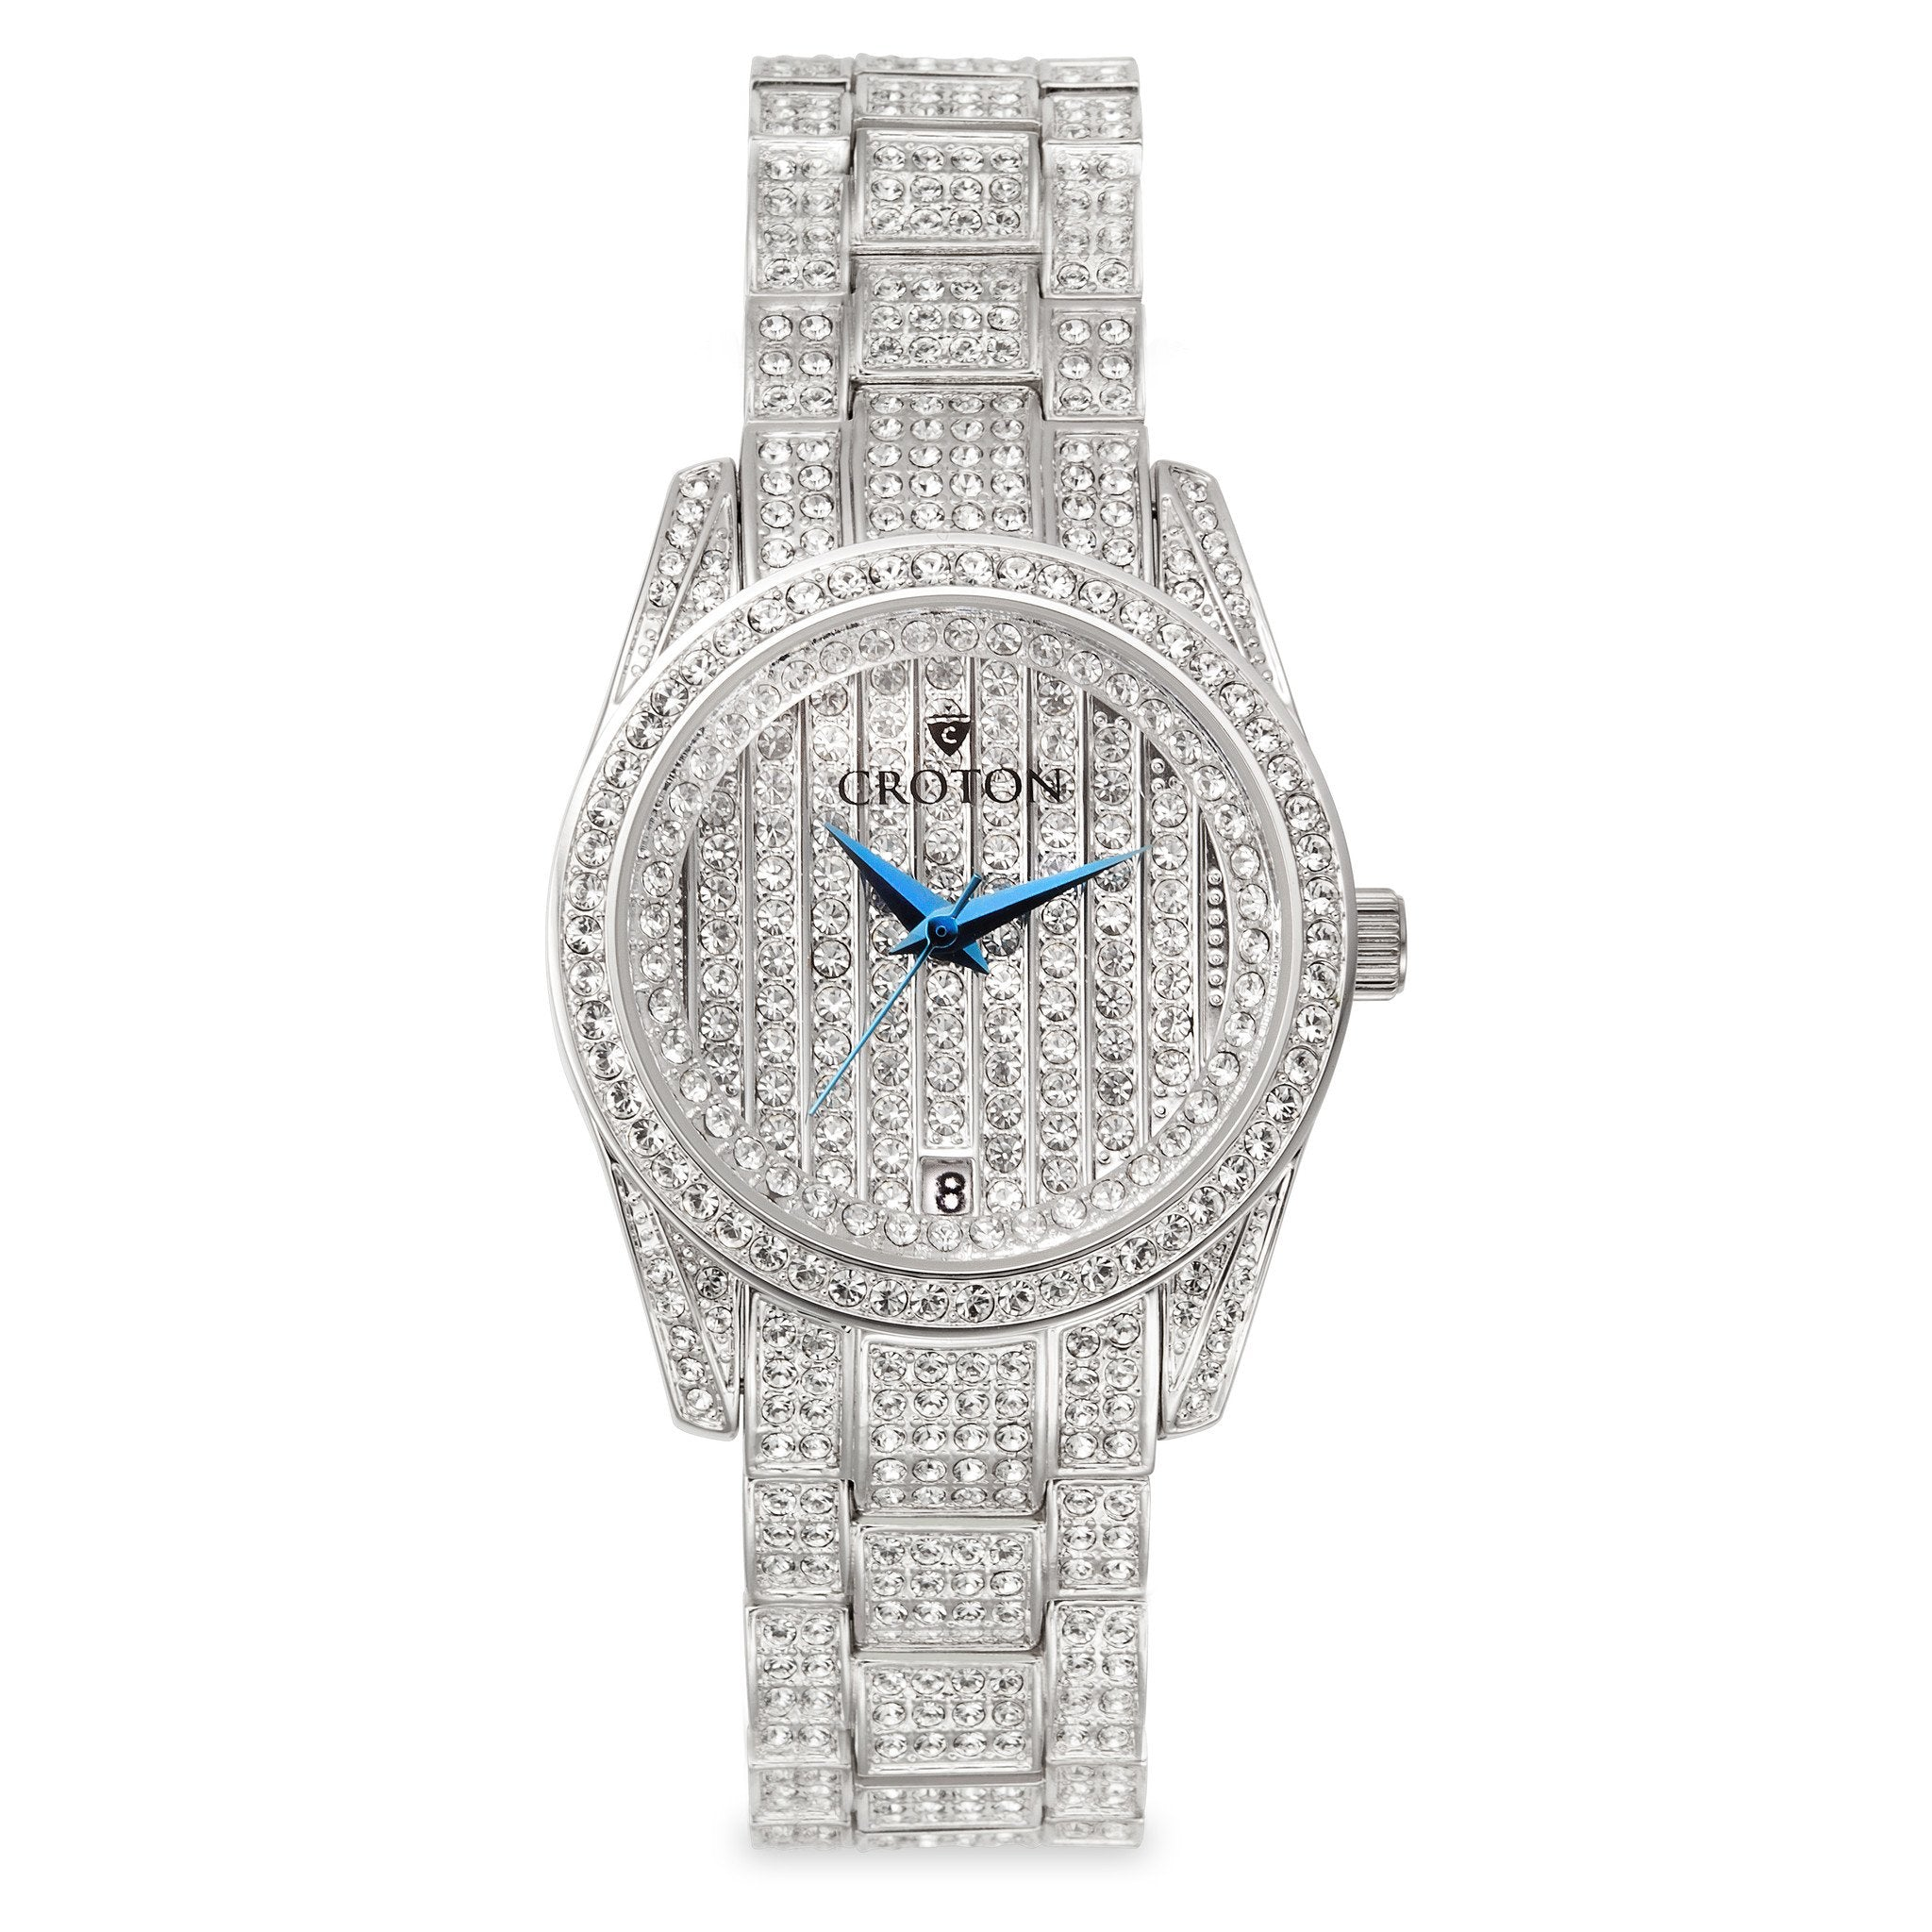 Croton balliamo silvertone swarovski crystal watch with date croton group for Crystal watches